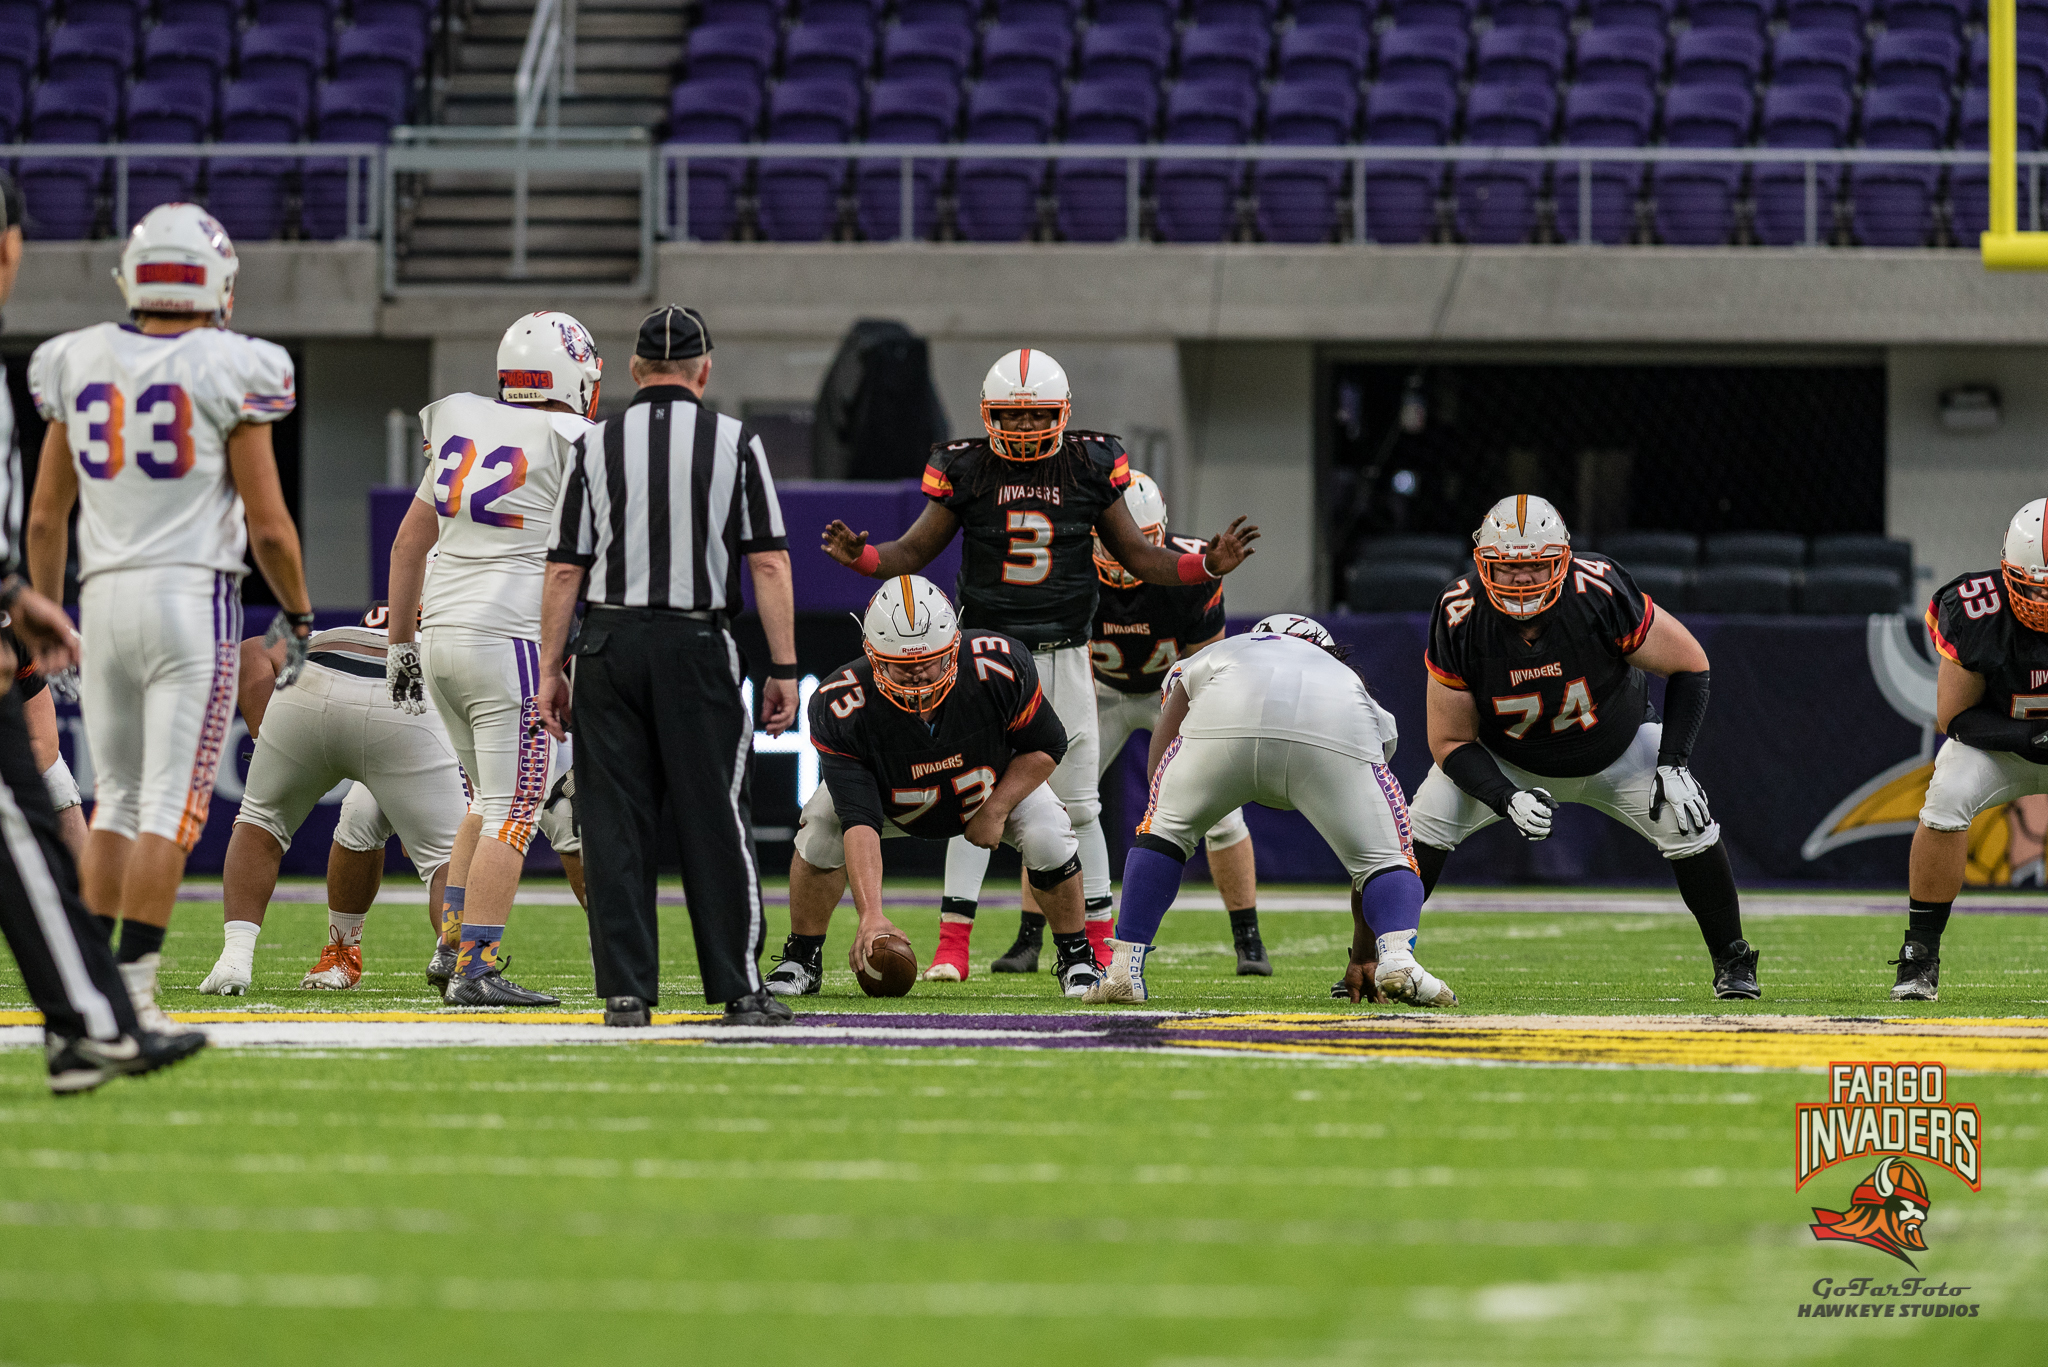 Fergus Falls Residents Make Impact On Fargo Football Team